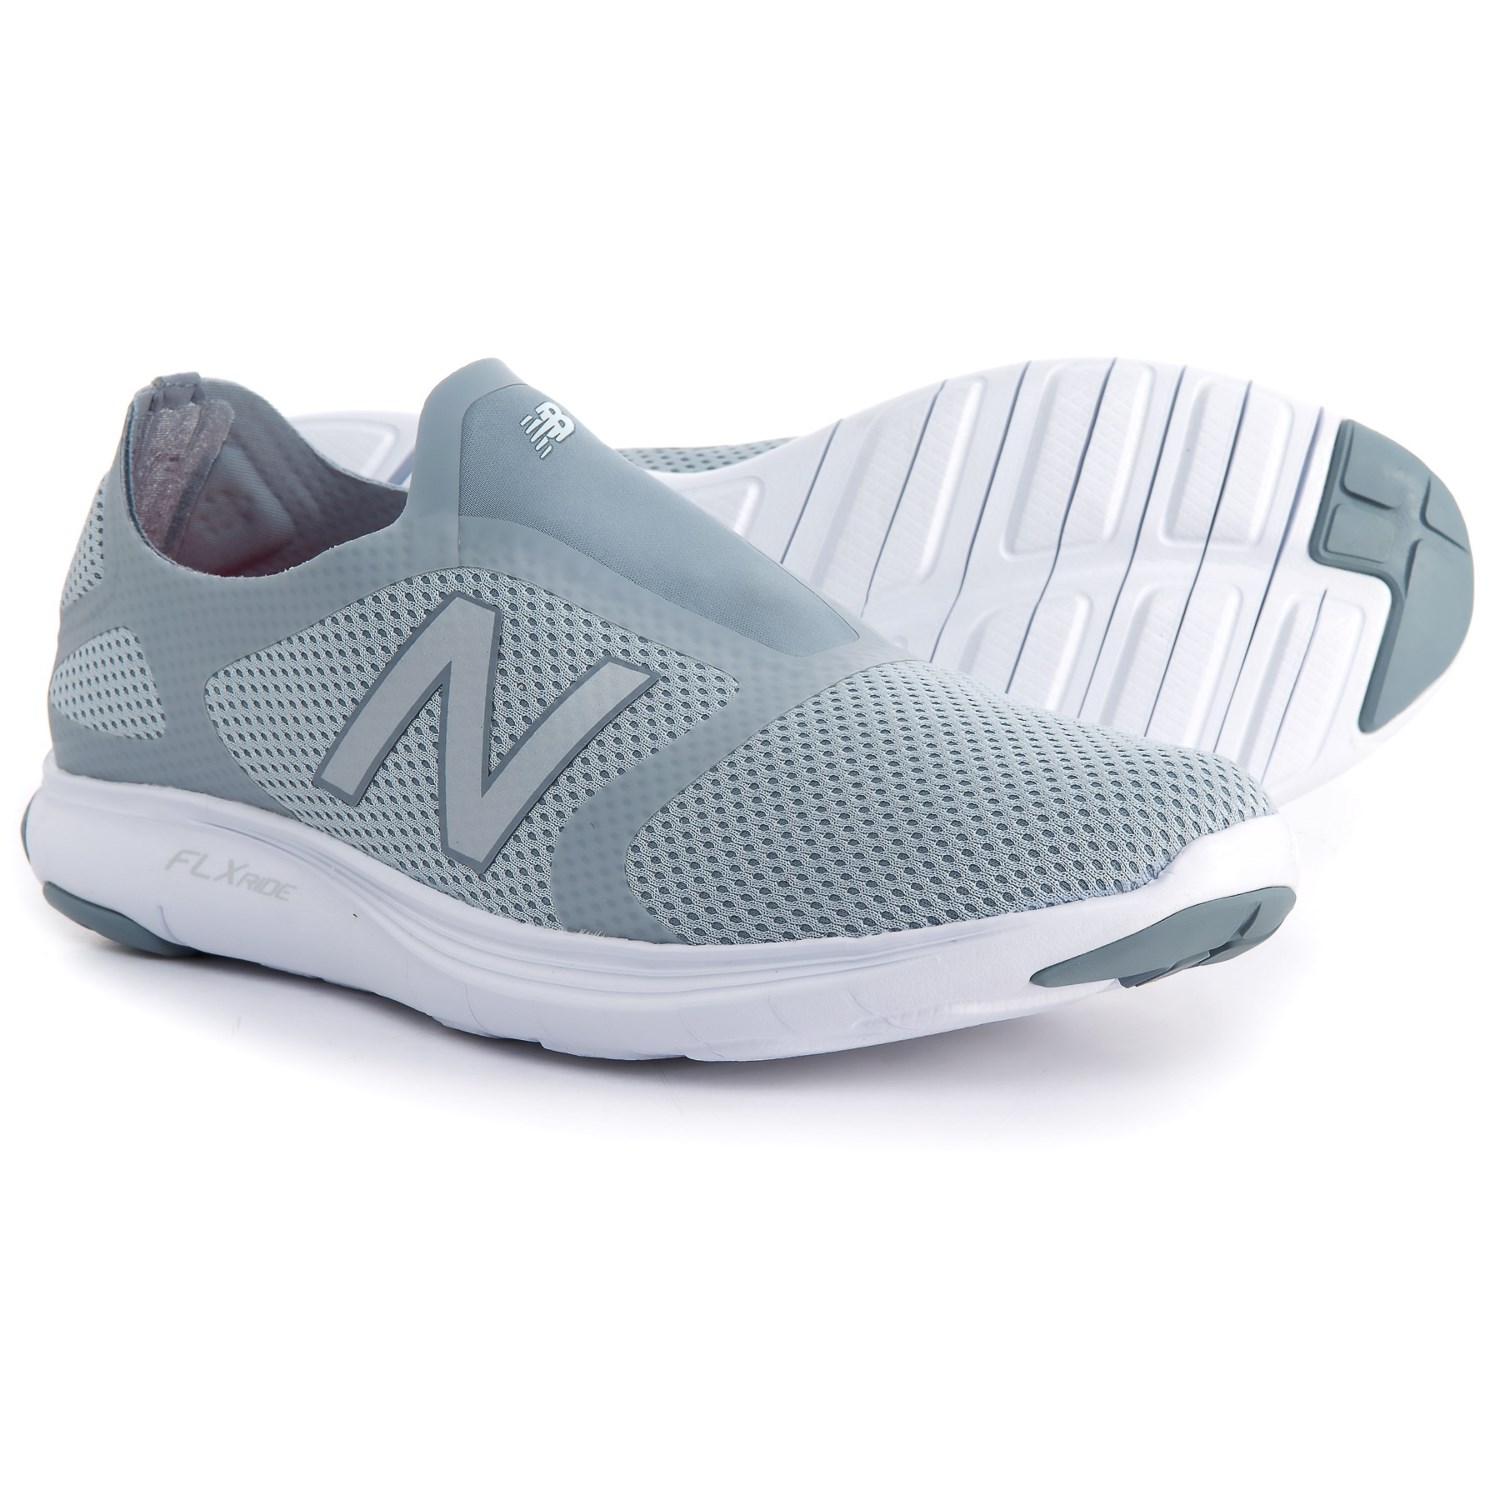 New Balance 530V2 Cross-Training Shoes (For Women) - Save 49%